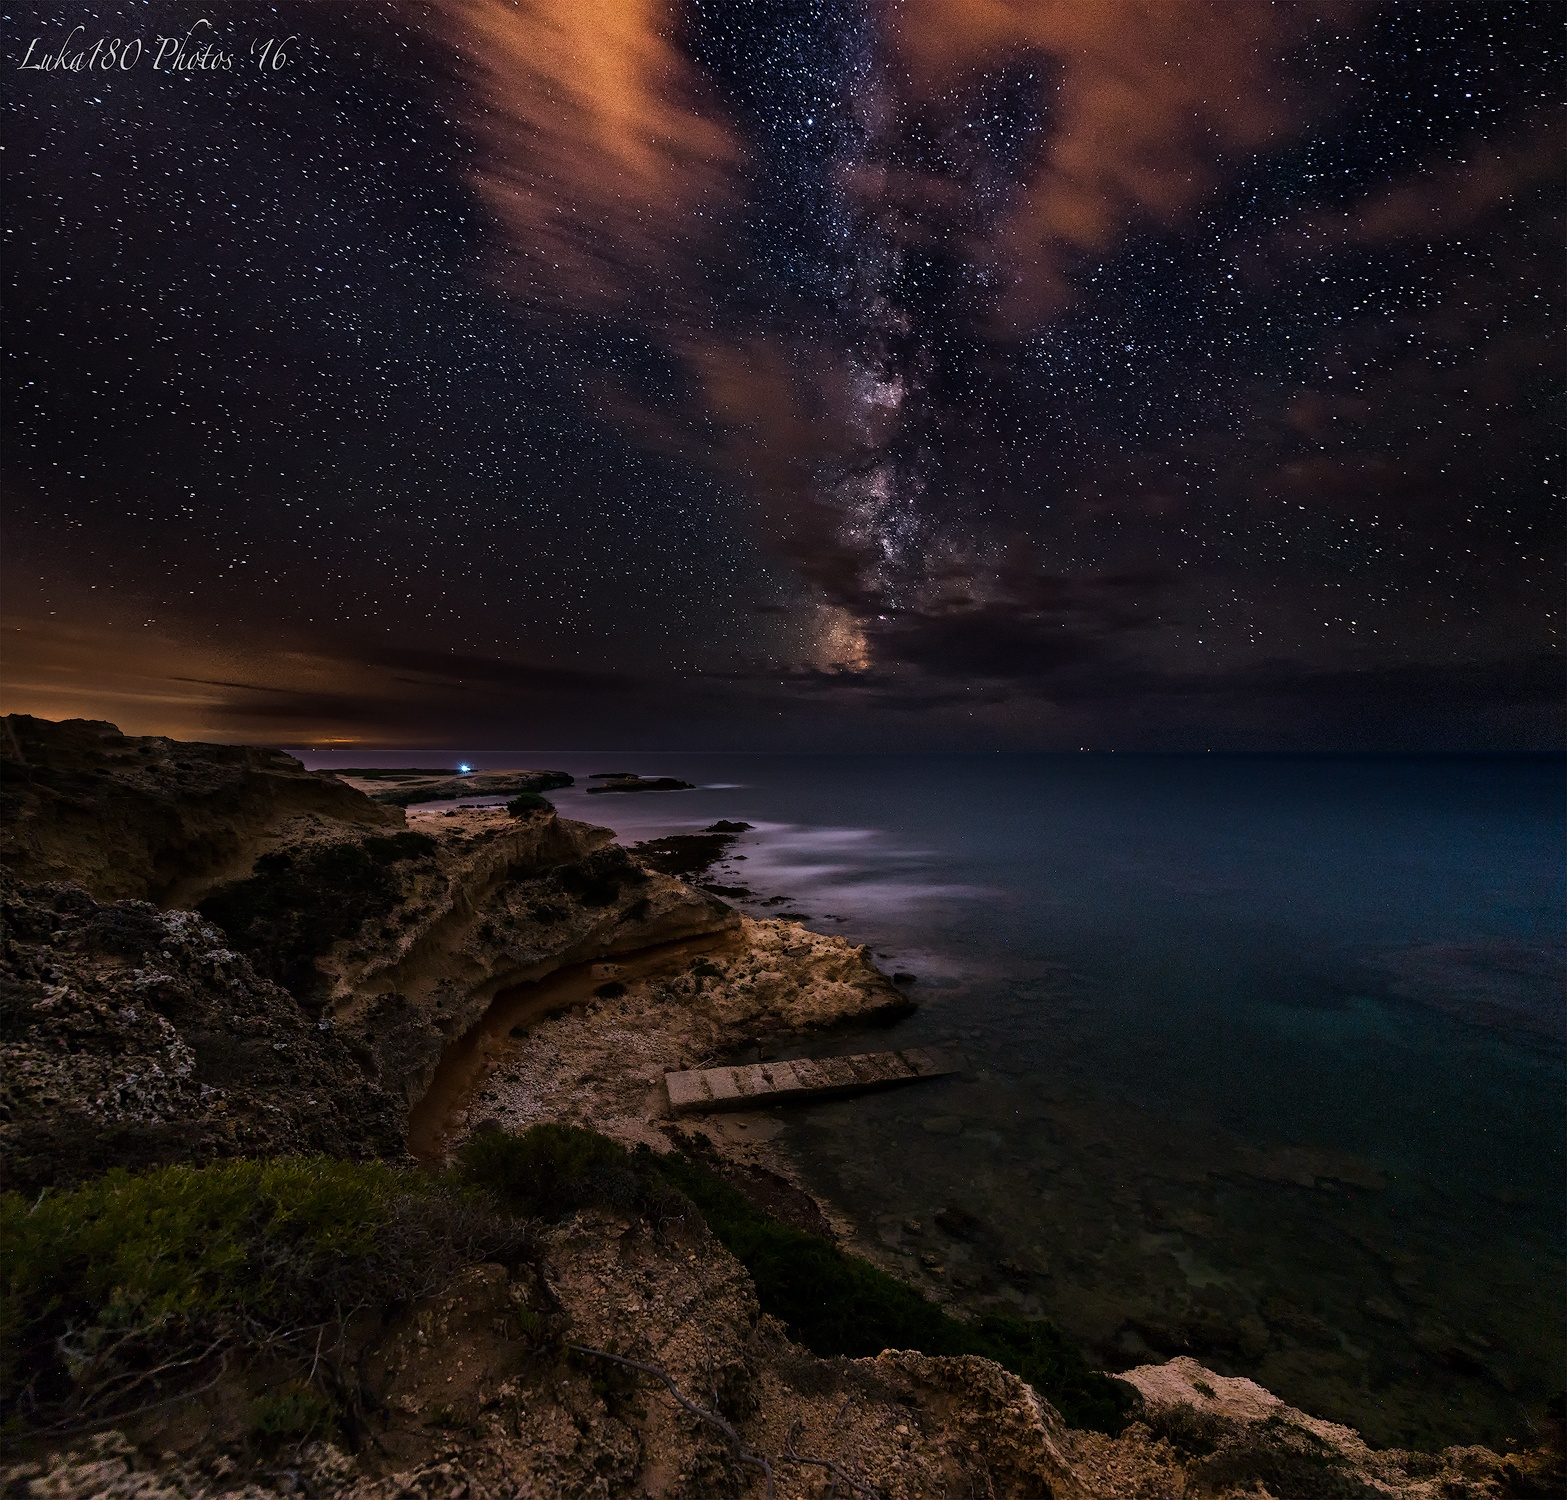 Capo Mannu Milkyway by Luca Sanna